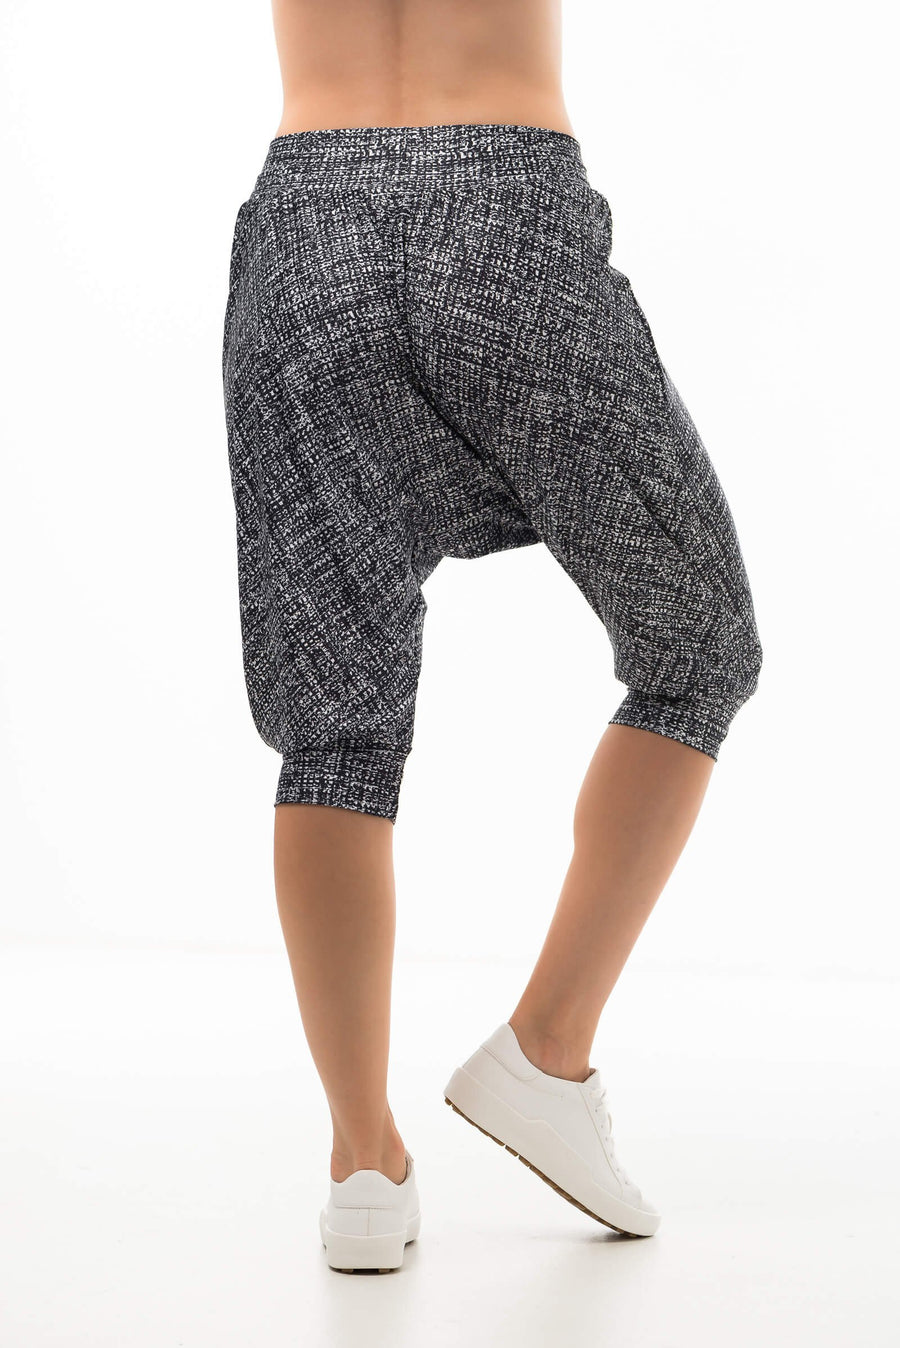 Drop Crotch Pants Verona Onelike Athleisure